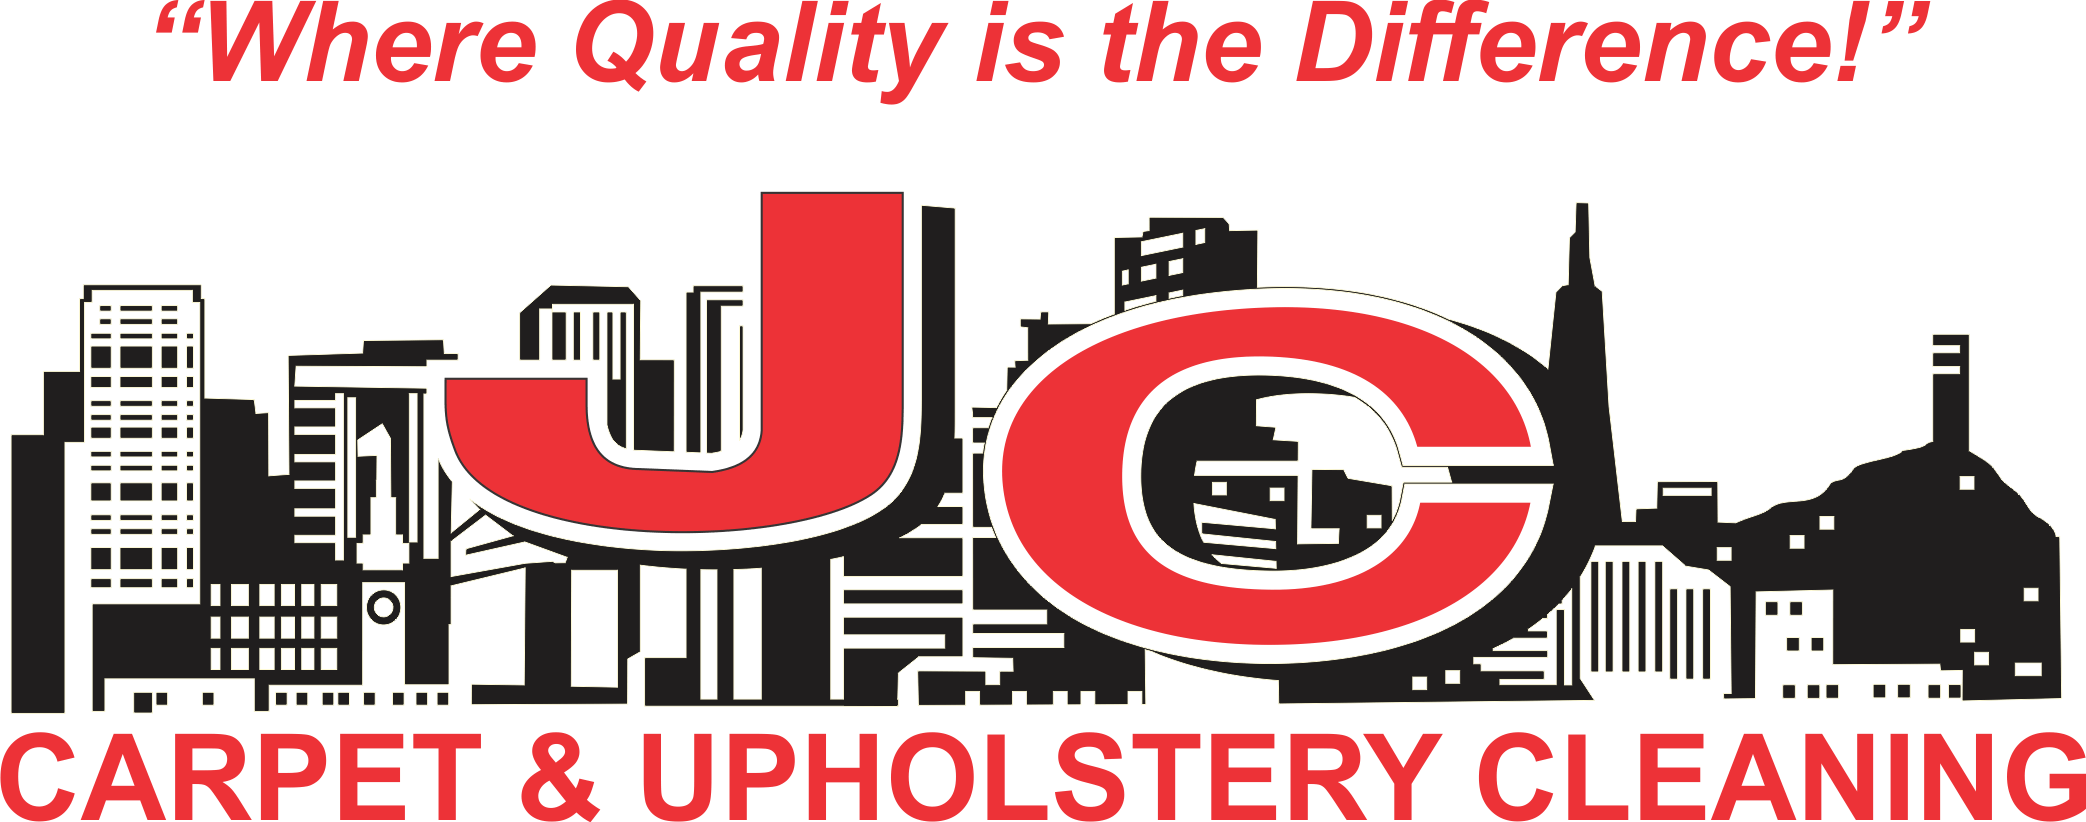 JC Carpet & Upholstery Cleaning